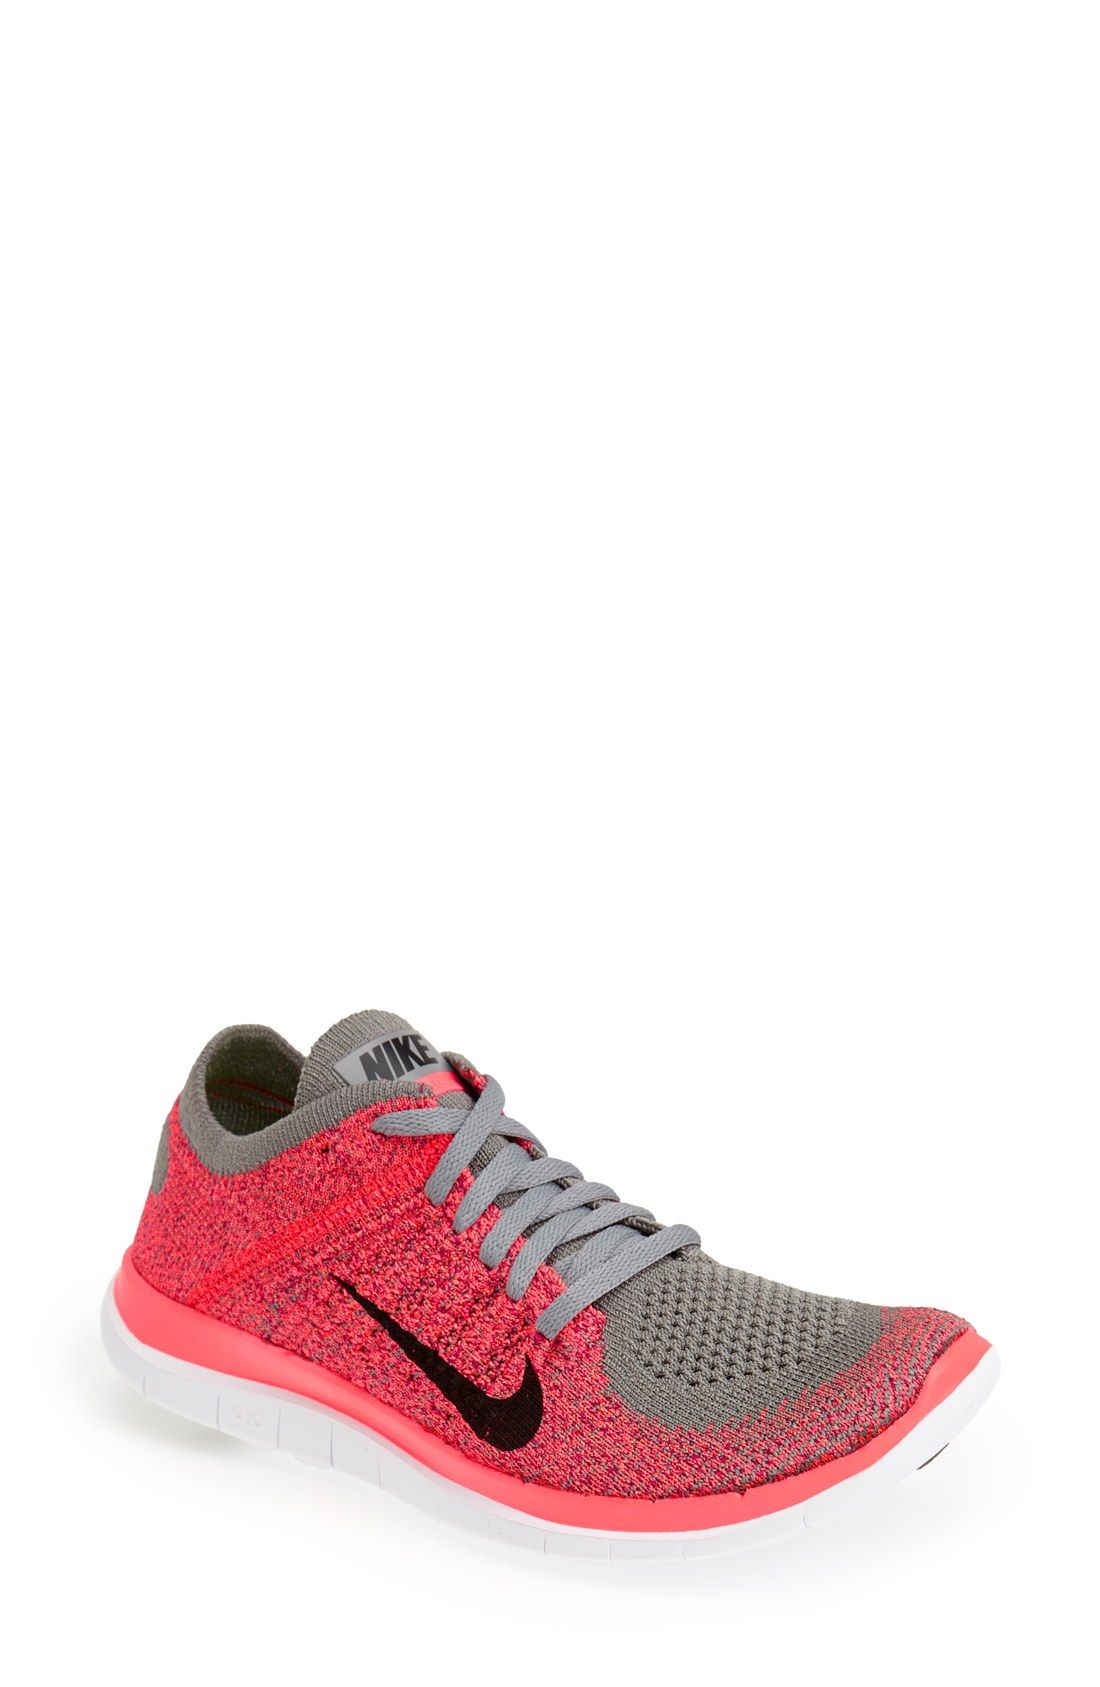 9624f0027746 These pink Nike  Free Flyknit 4.0  running shoes fit like socks and are  light